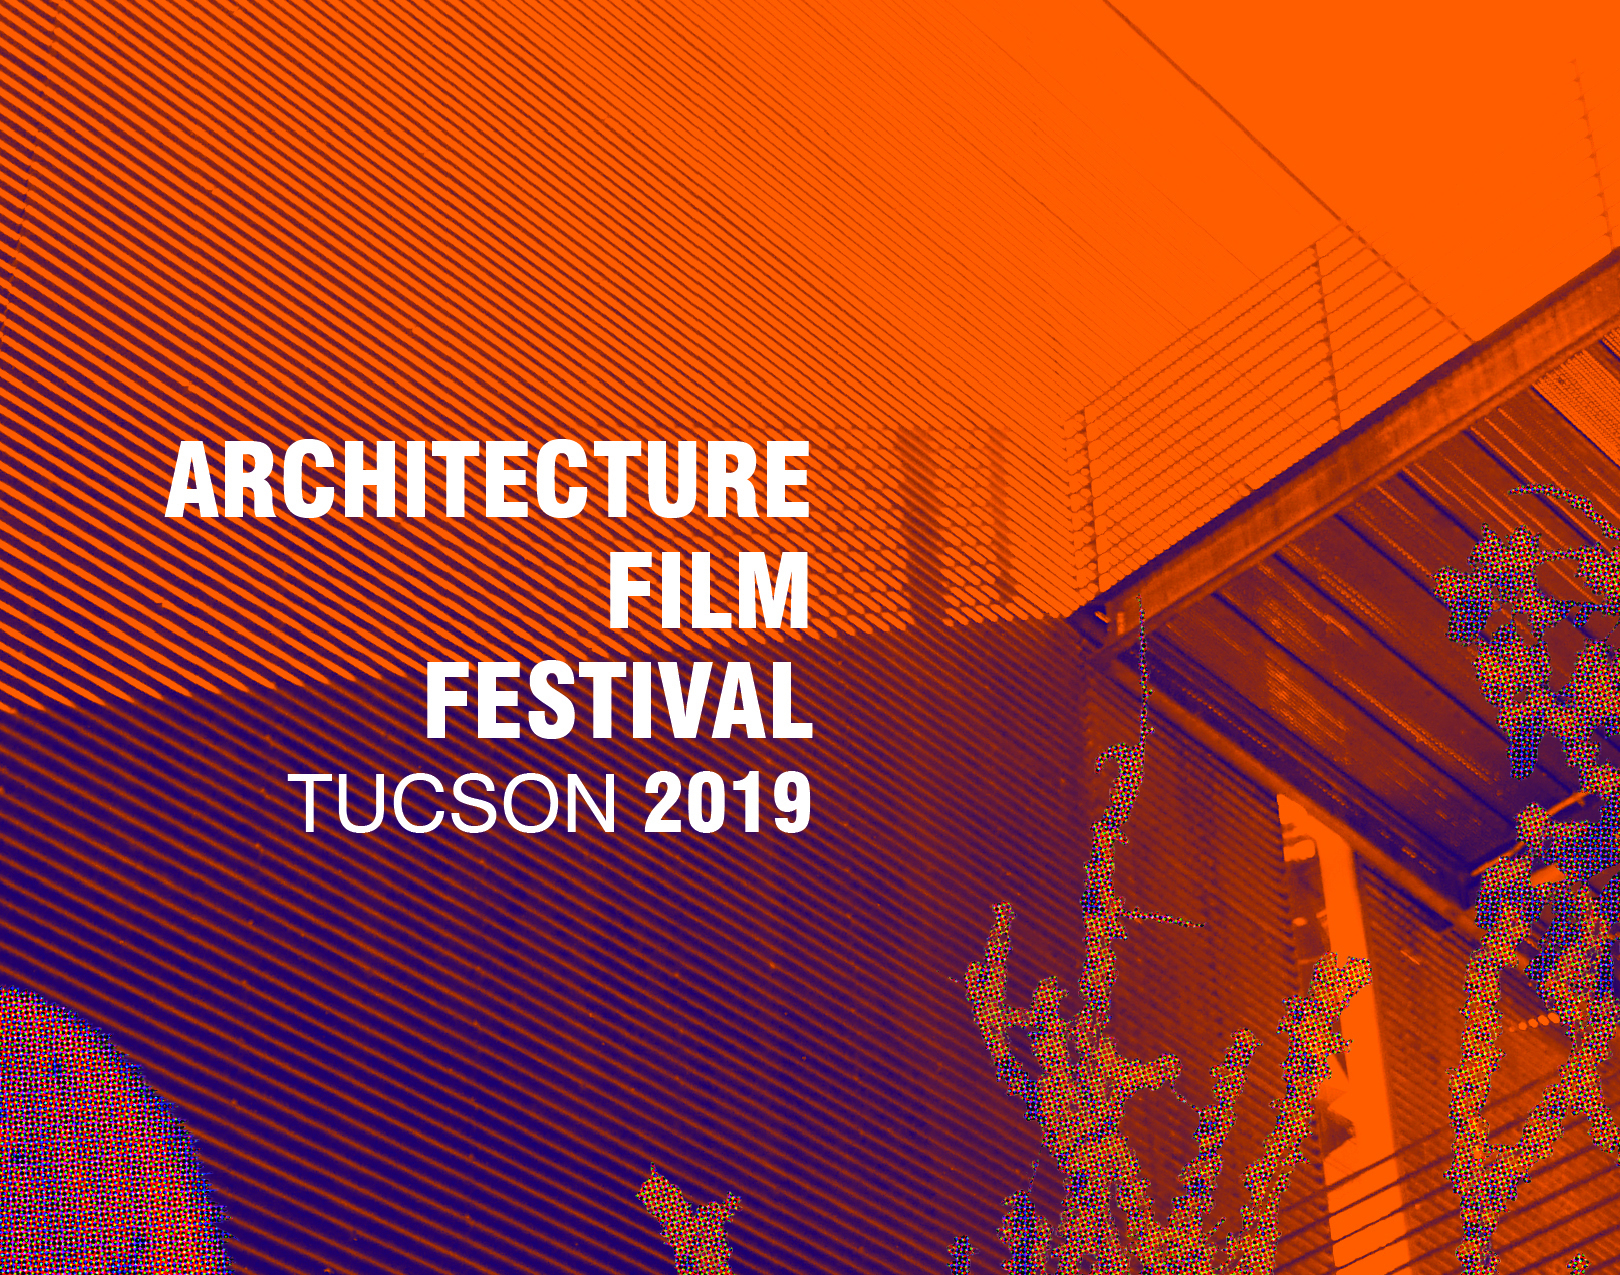 Arch Film Fest Tucson 2019 V03 PROGRAM A9.jpg